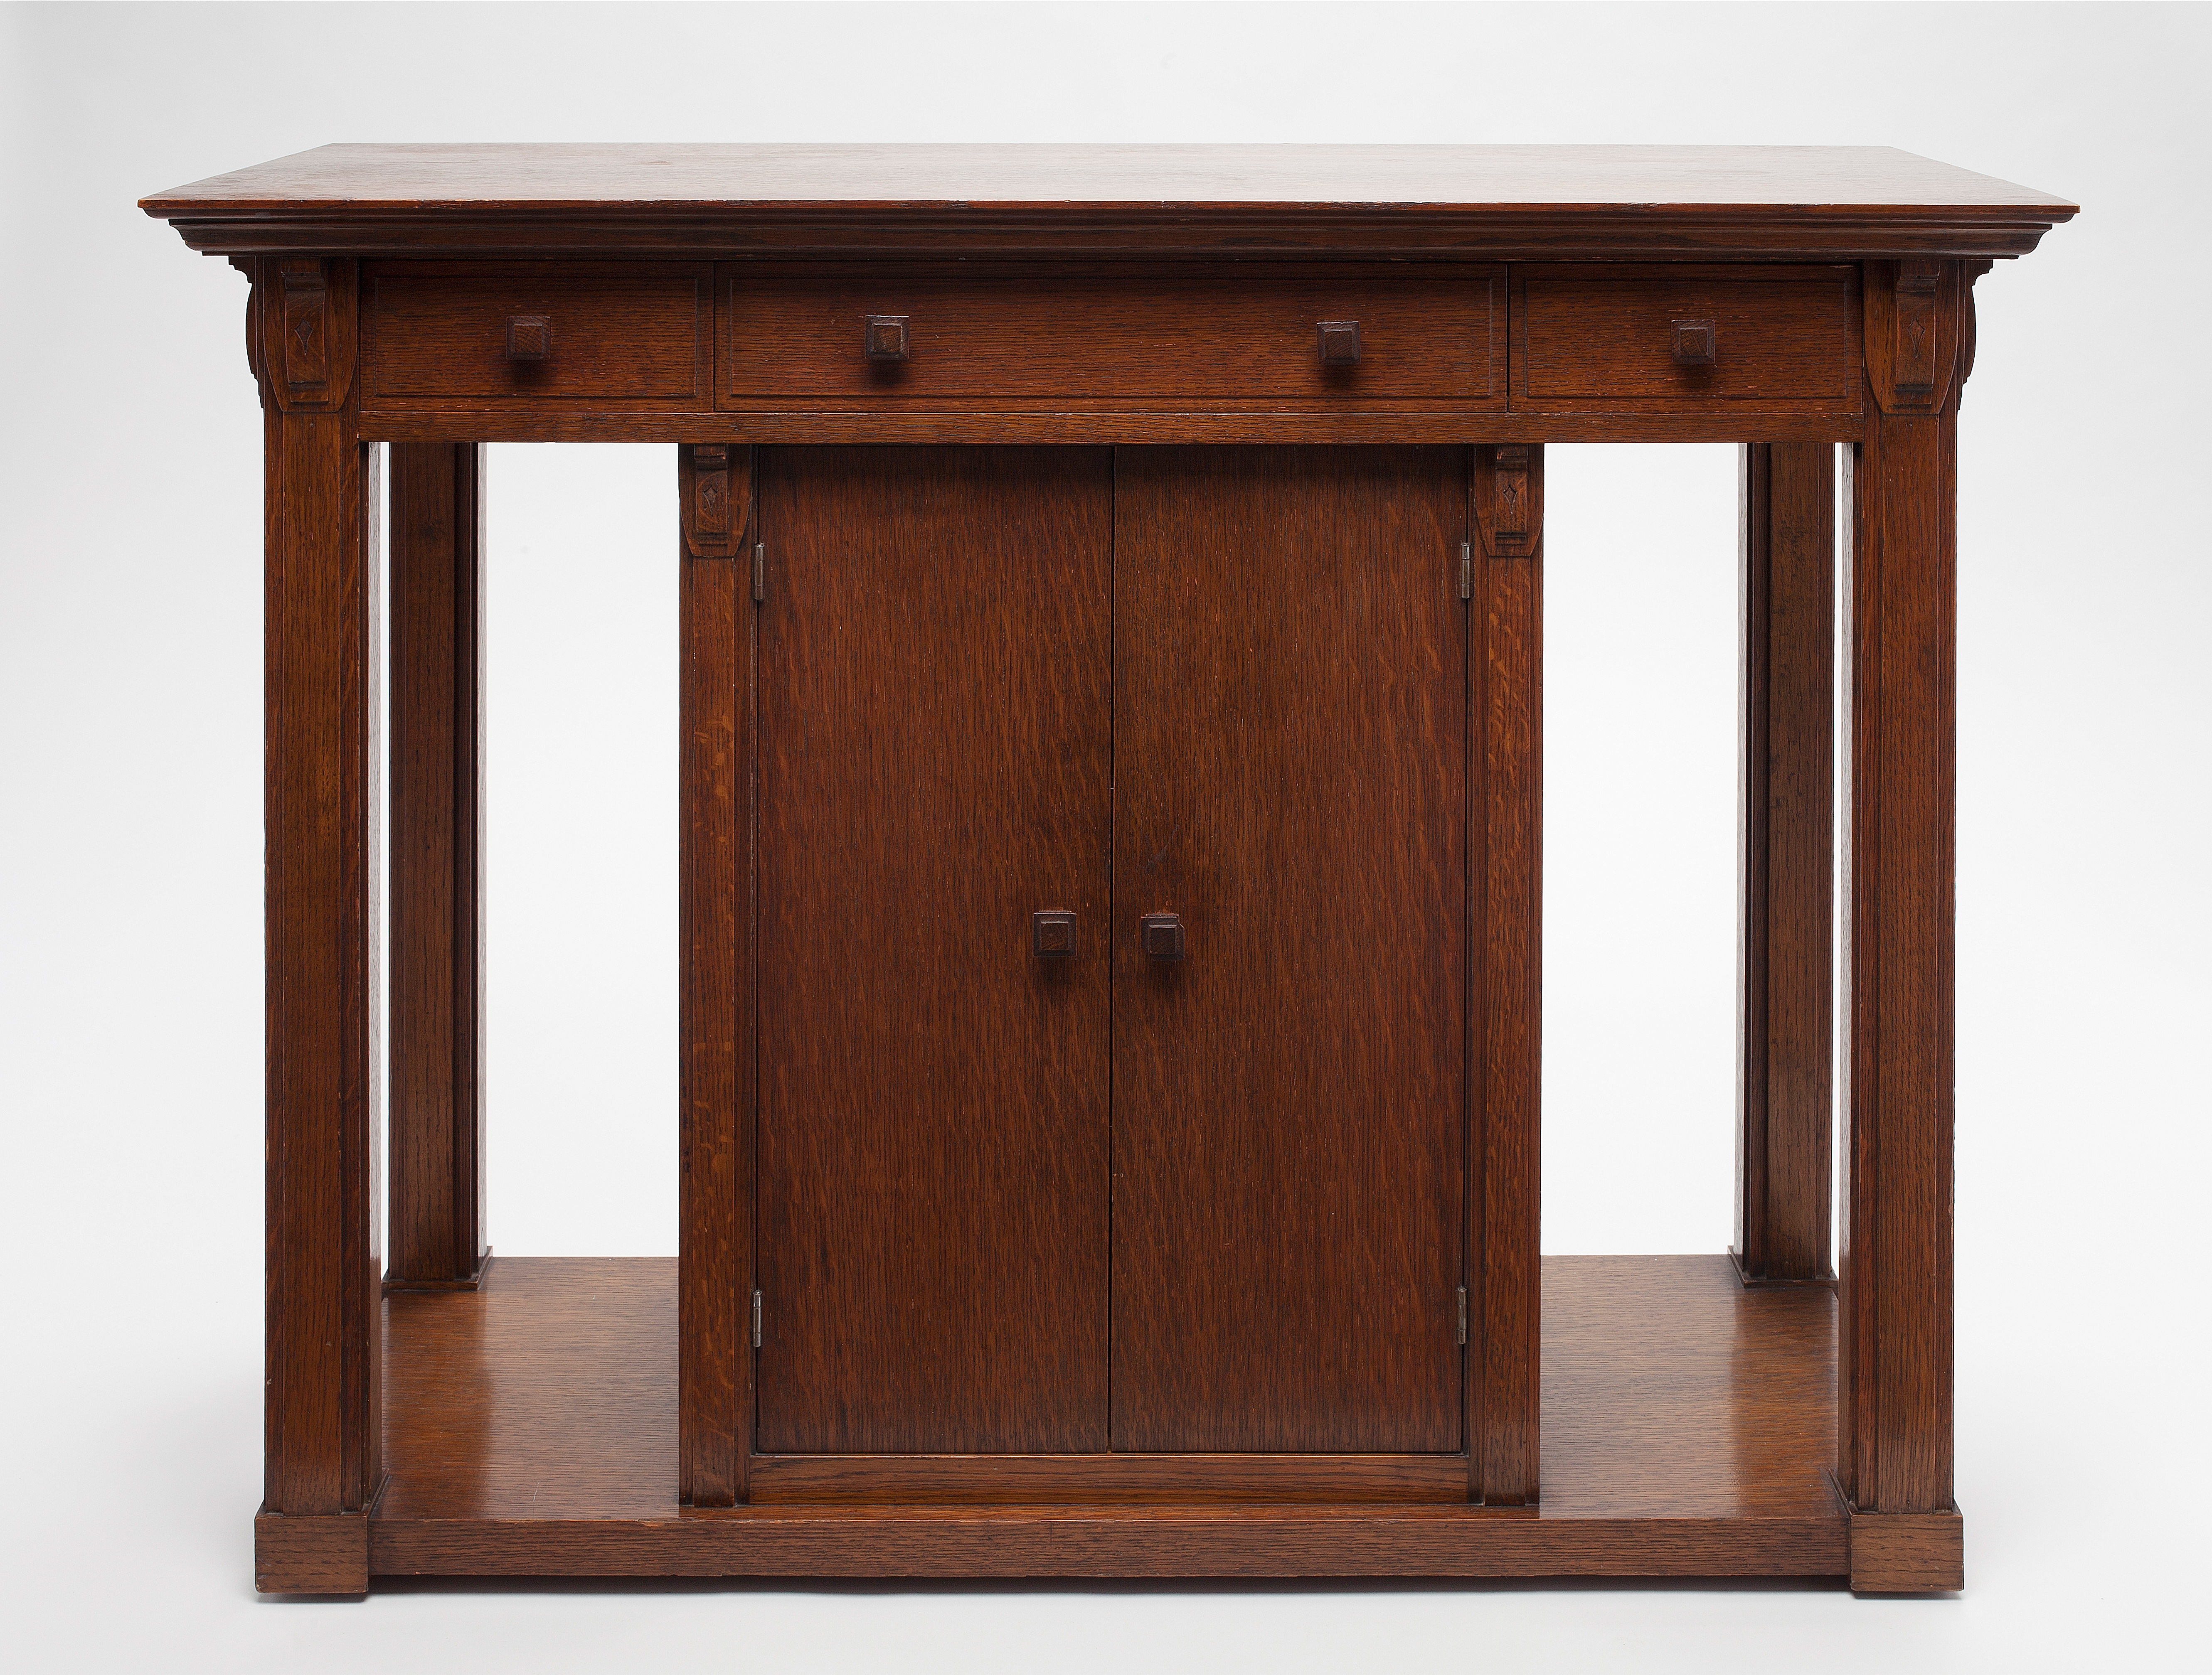 George Mann Niedecken (American, 1878–1945), Serving Table for the Philip Ettenheim Residence (Milwaukee, WI), 1911. Oak; 32 x 42 1/4 x 19 3/16 in. Milwaukee Art Museum, Purchase, with funds from the Mae E. Demmer Charitable Trust in memory of Lawrence E. Demmer M2012.295. Photo by John R. Glembin.